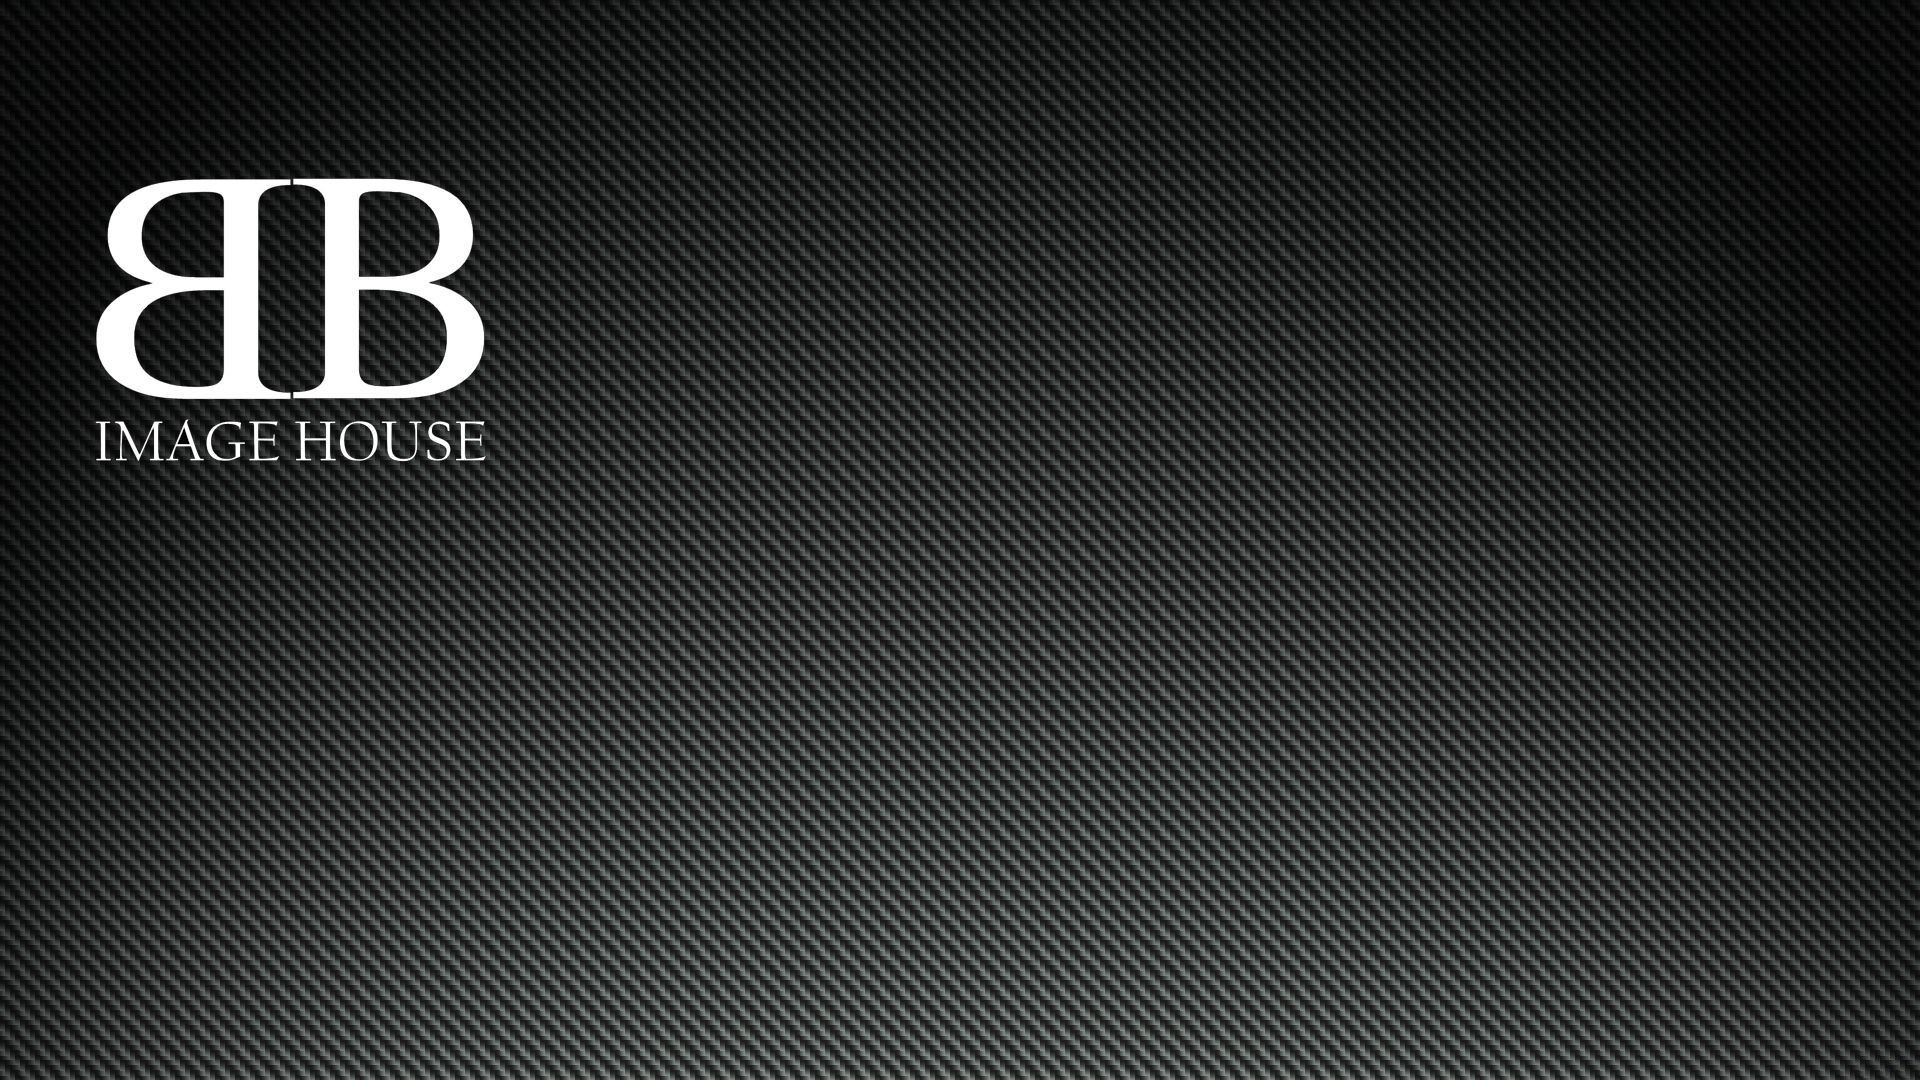 Res: 1920x1080, The Most Awesome along with Gorgeous carbon fiber iphone wallpaper